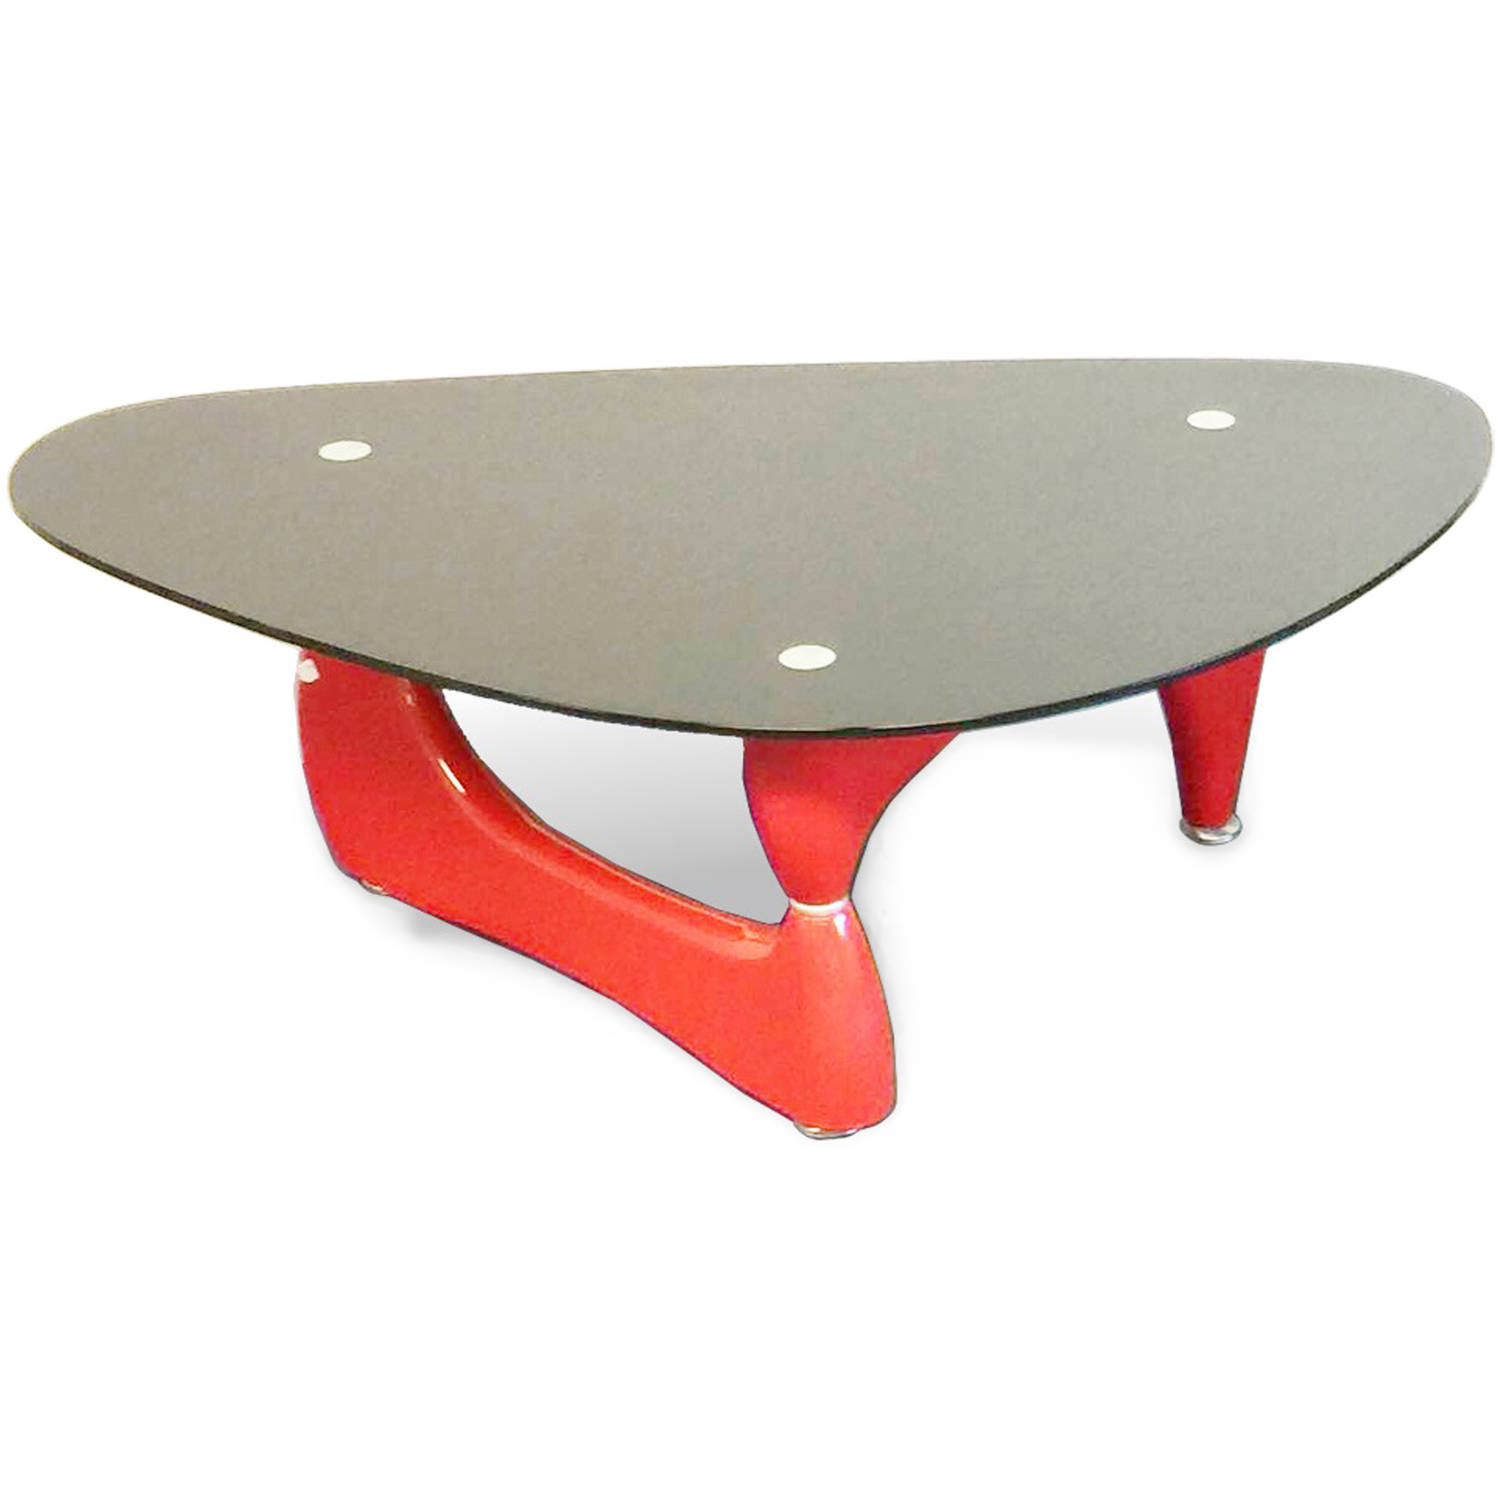 High Quality Noguchi Style Coffee Table, Red Color With Black Glass Top